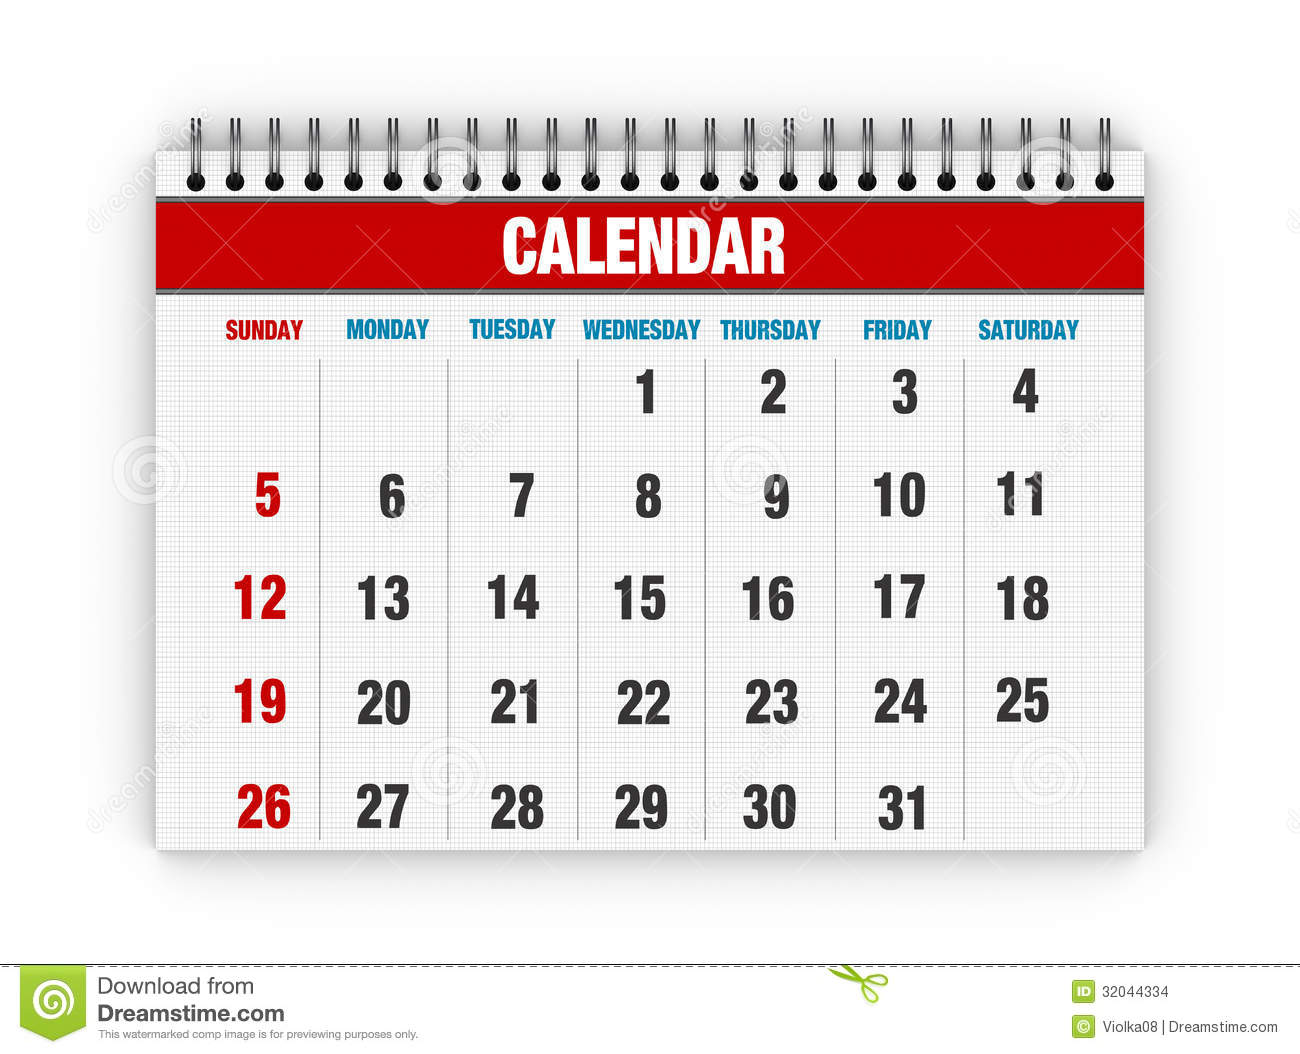 Calendar clipart month. Blank red days clip